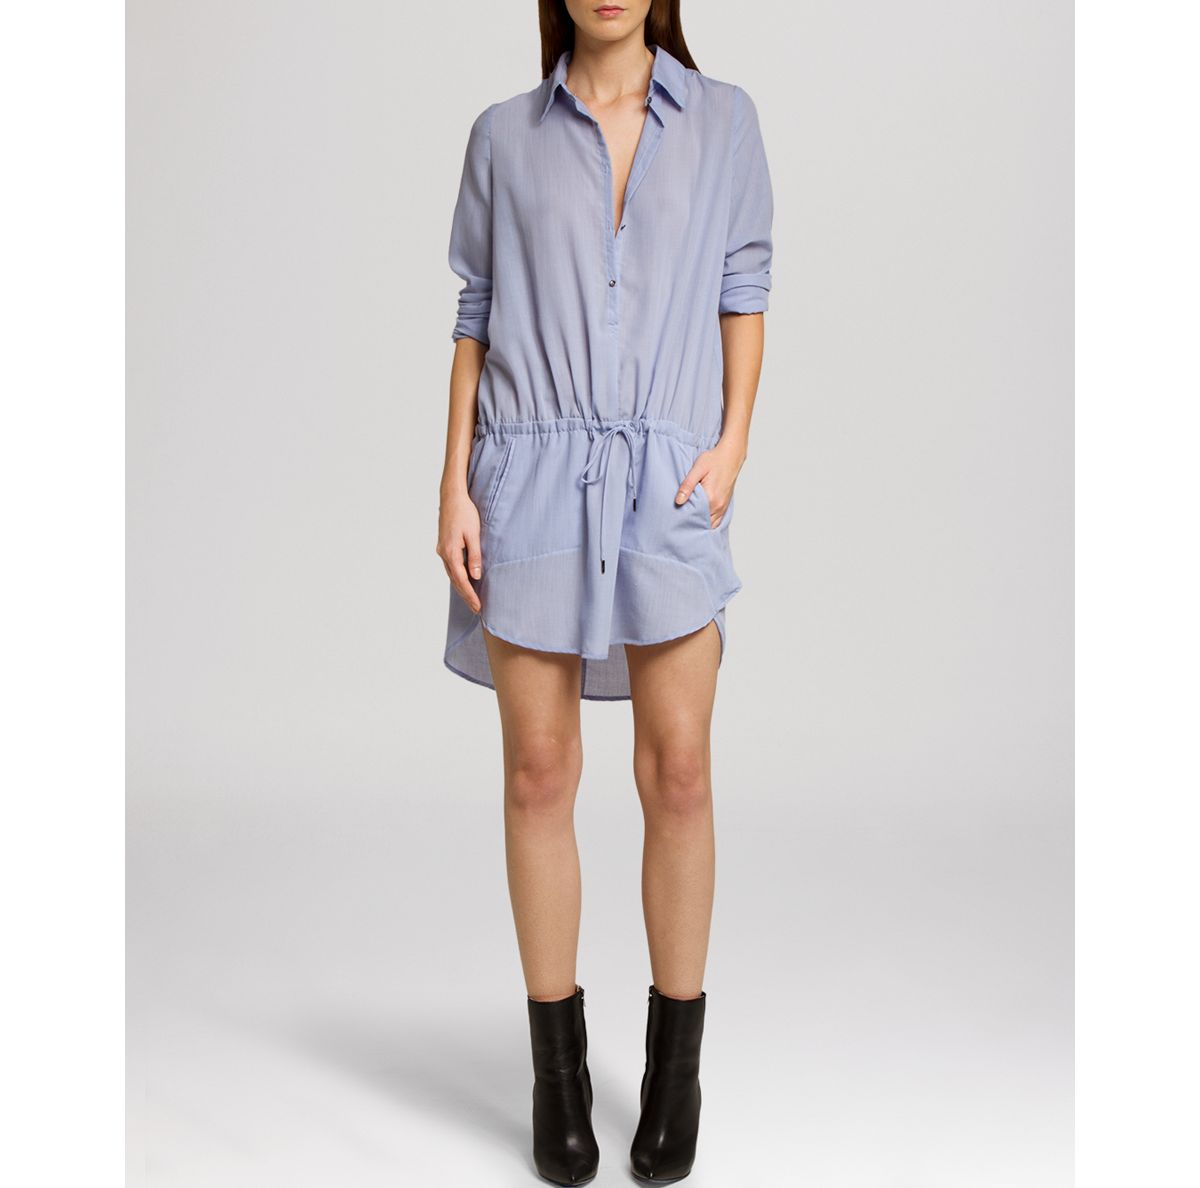 Halston heritage dress shirt in blue sky lyst for Halston heritage shirt dress